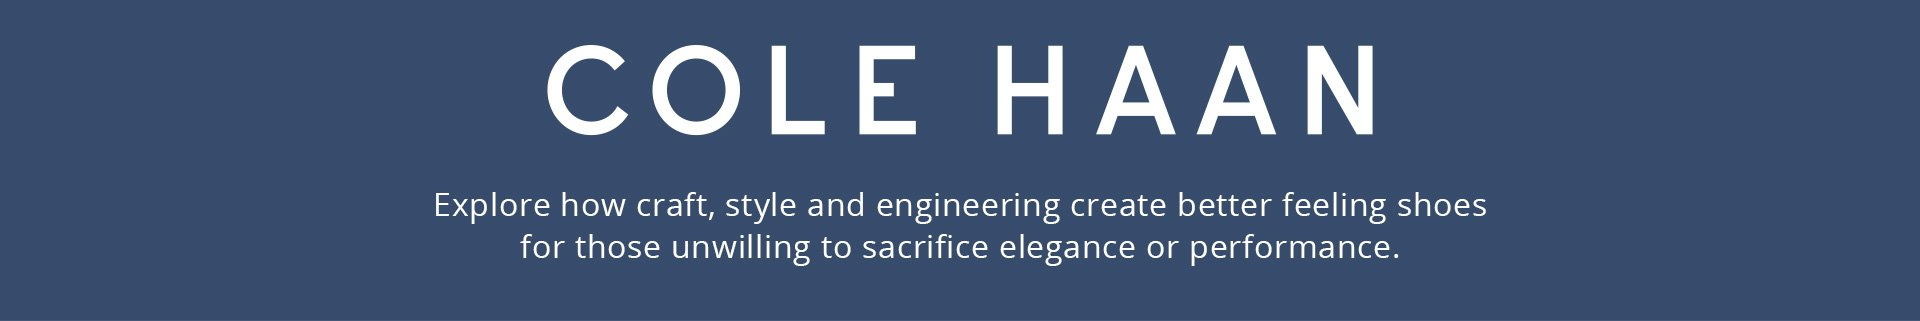 Cole Haan Header